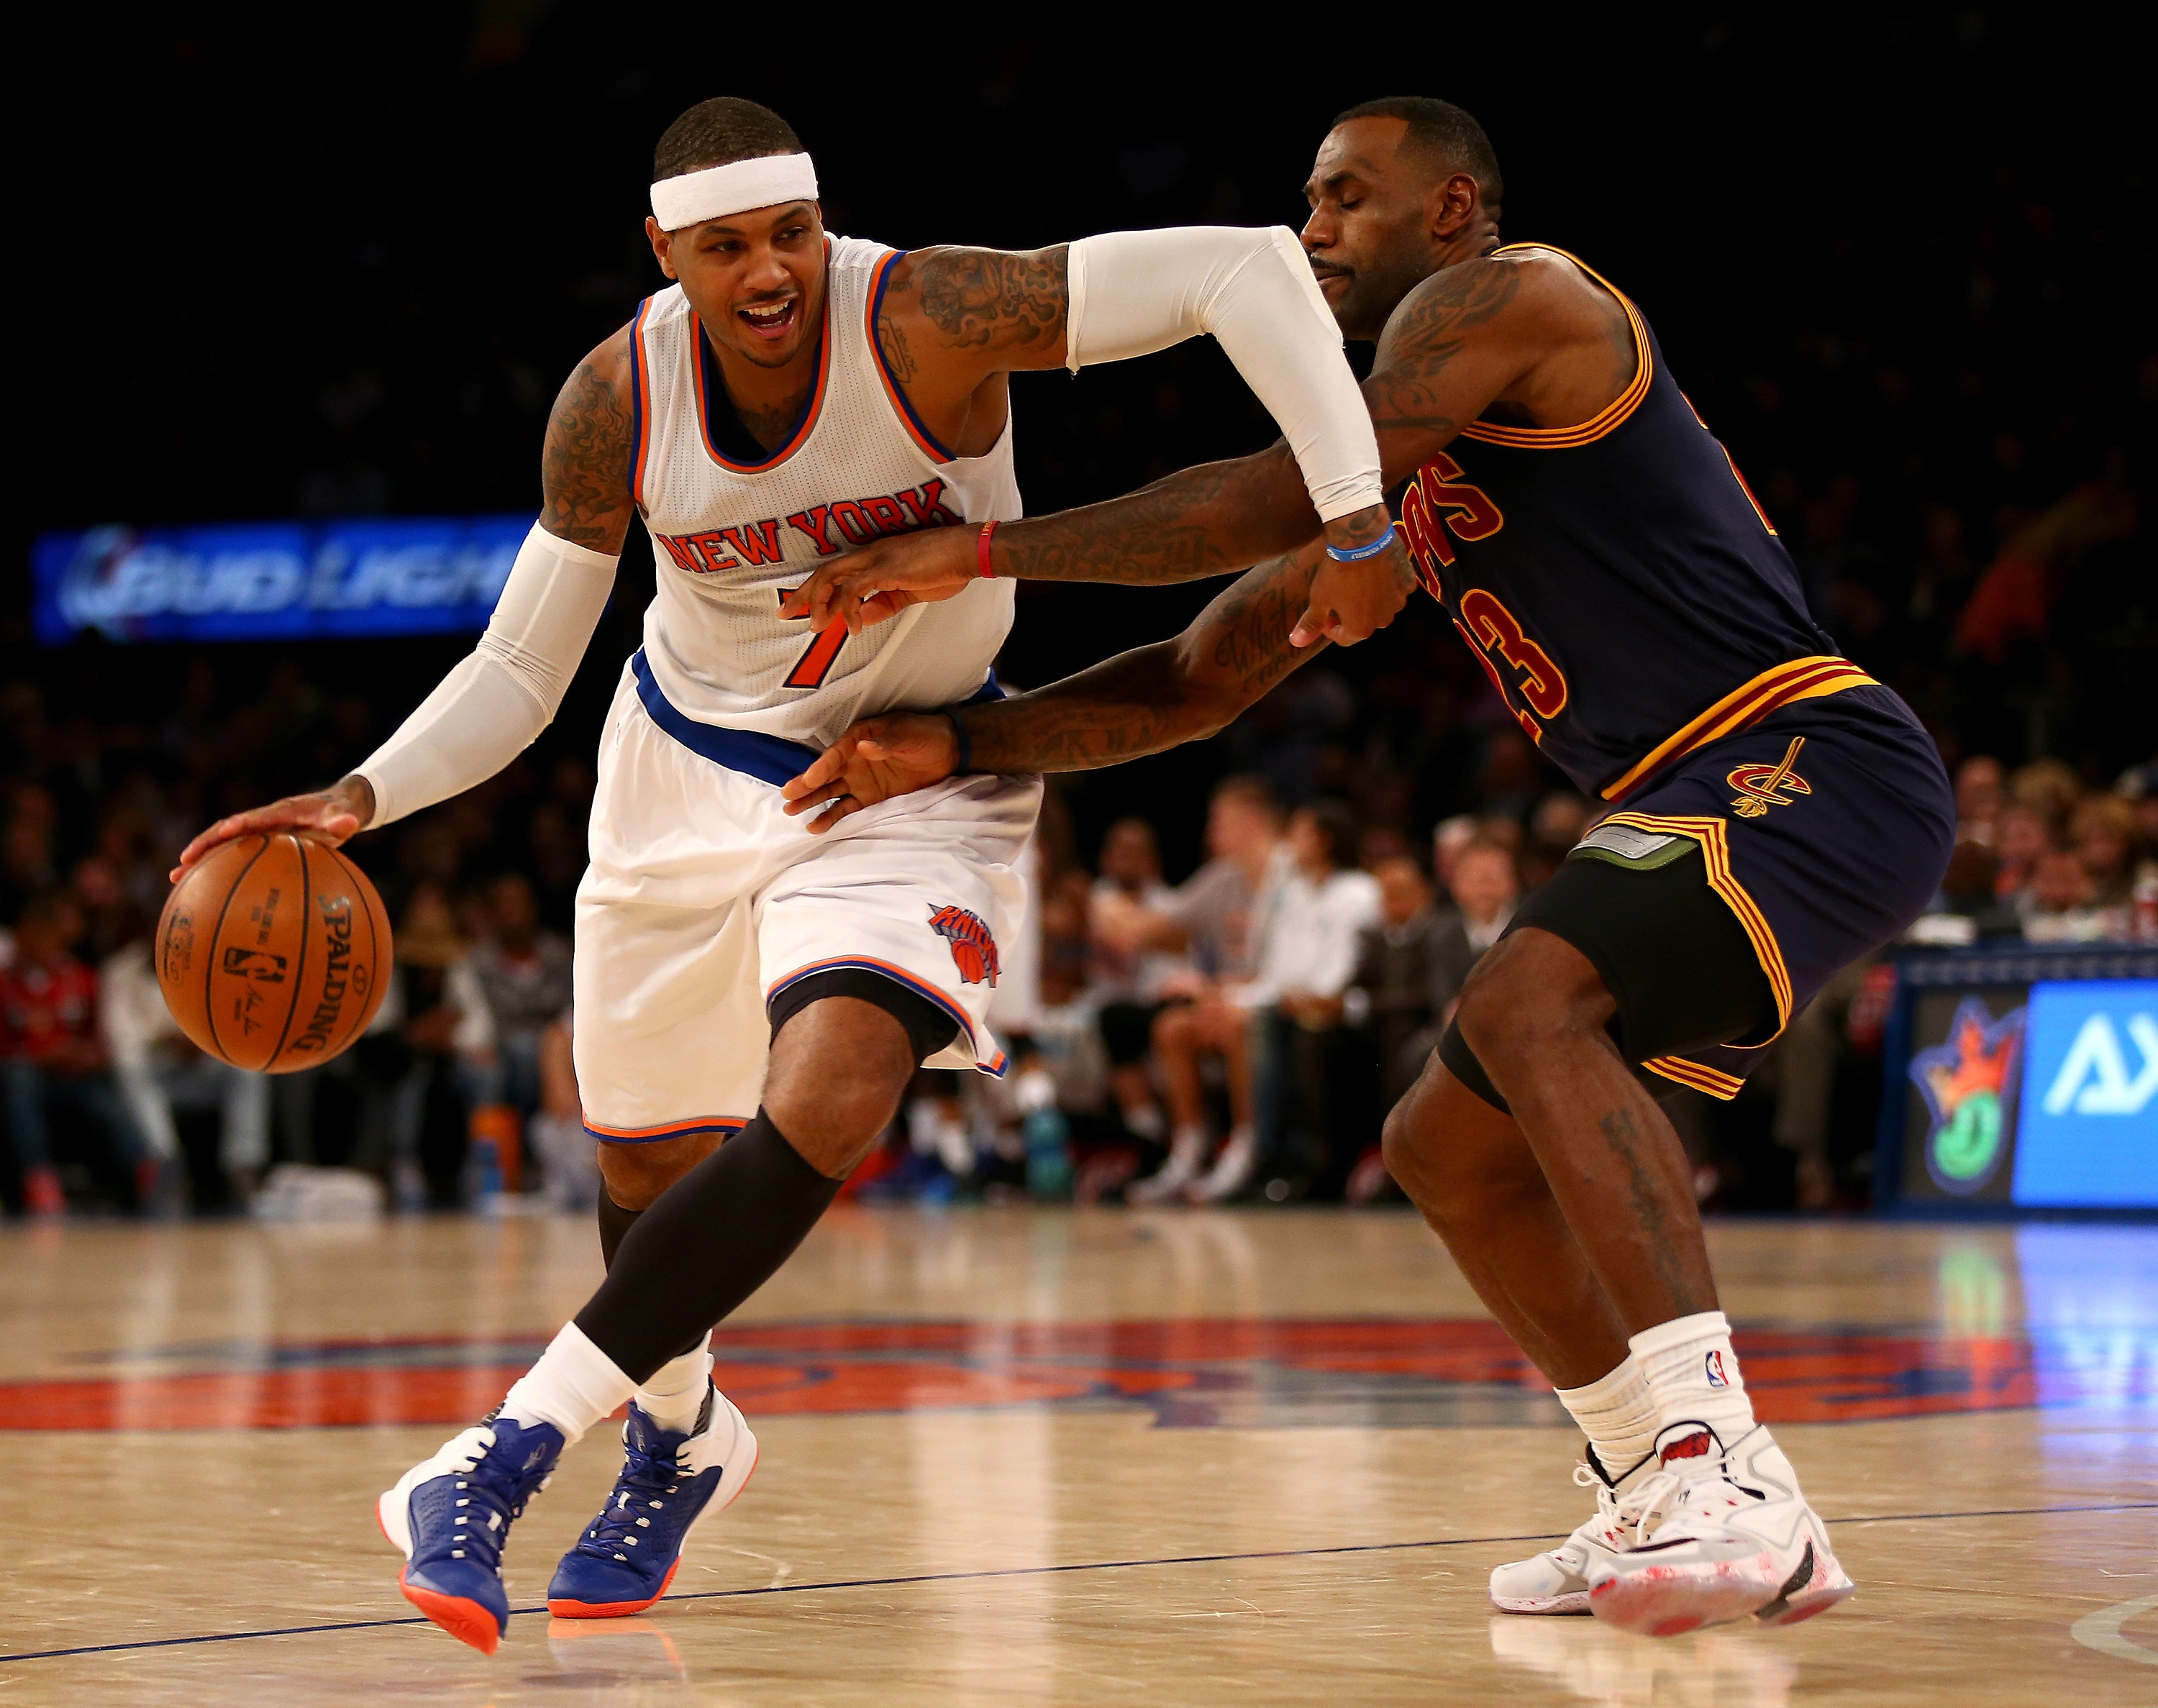 NEW YORK, NY - NOVEMBER 13:  Carmelo Anthony #7 of the New York Knicks tries to get around LeBron James #23 of the Cleveland Cavaliers in the fourth quarter at Madison Square Garden on November 13, 2015 in New York City.(Photo by Elsa/Getty Images)